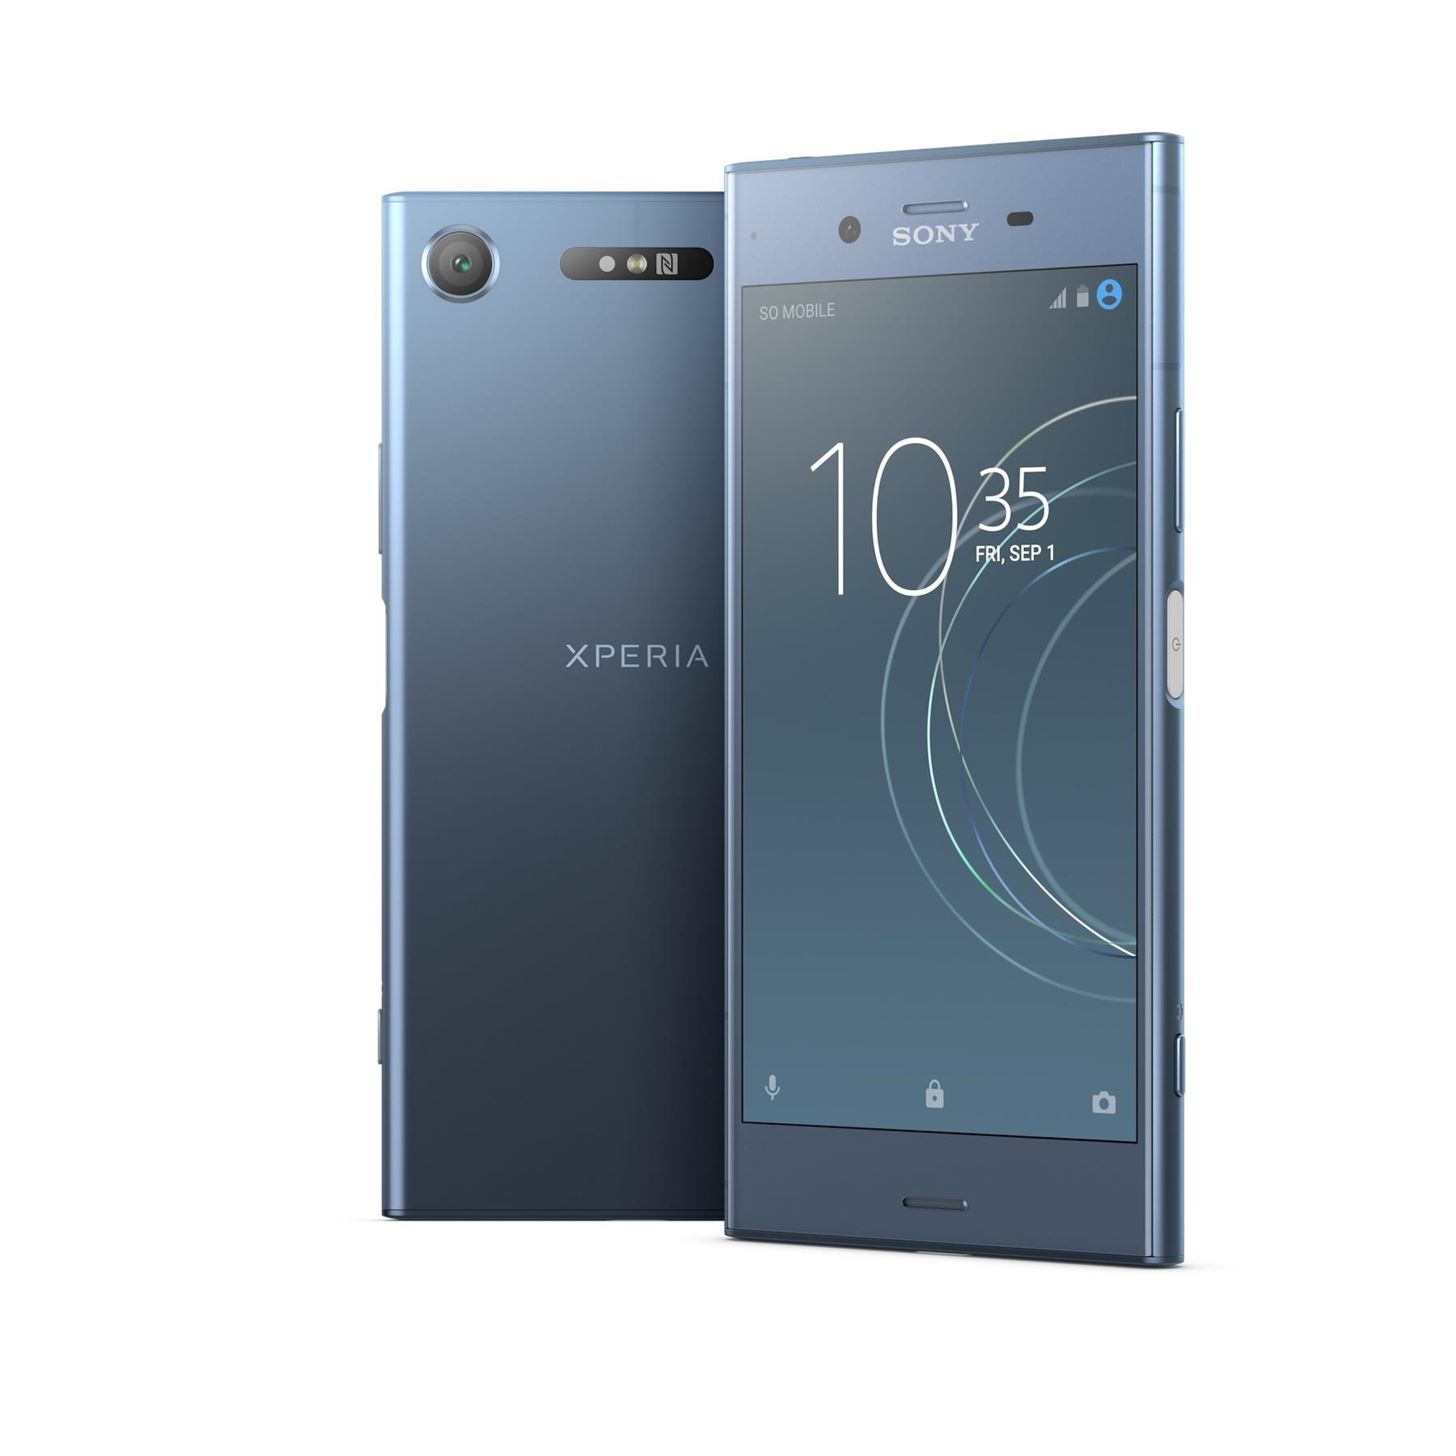 Sony Xperia XZ1 Boasts 3D Scanning Capabilities